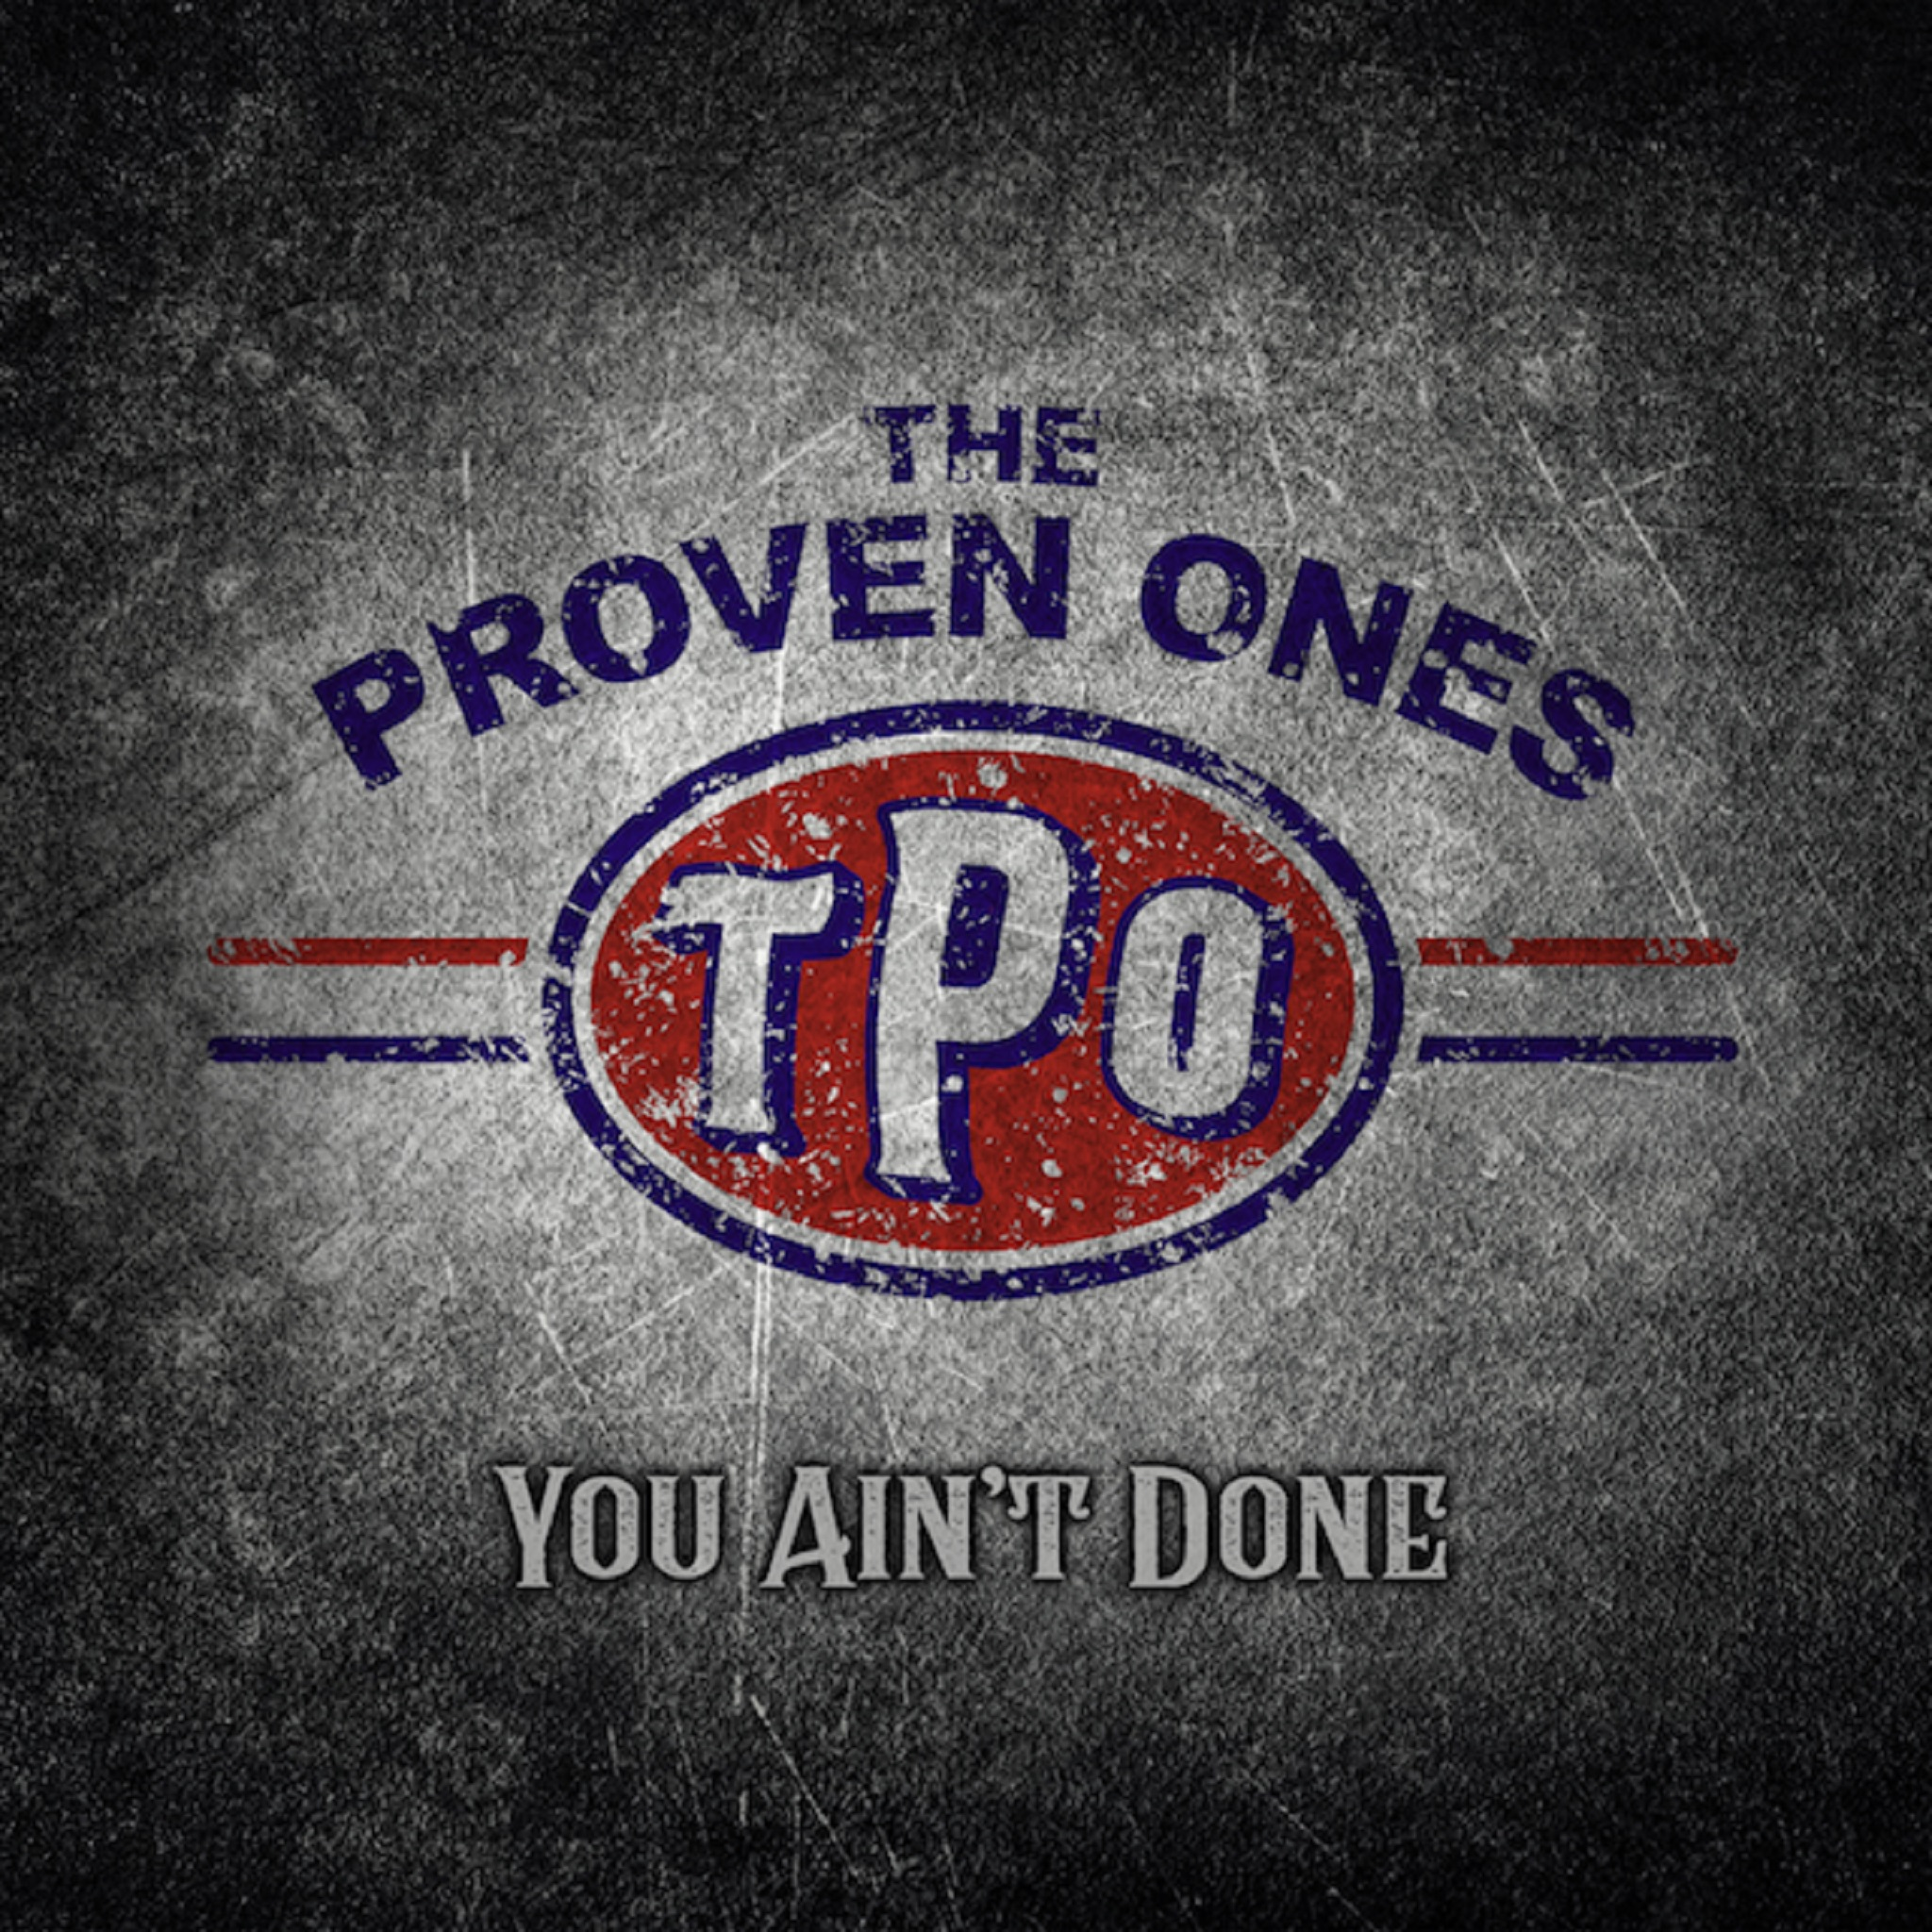 Blues Rock Supergroup The Proven Ones To Release New Album